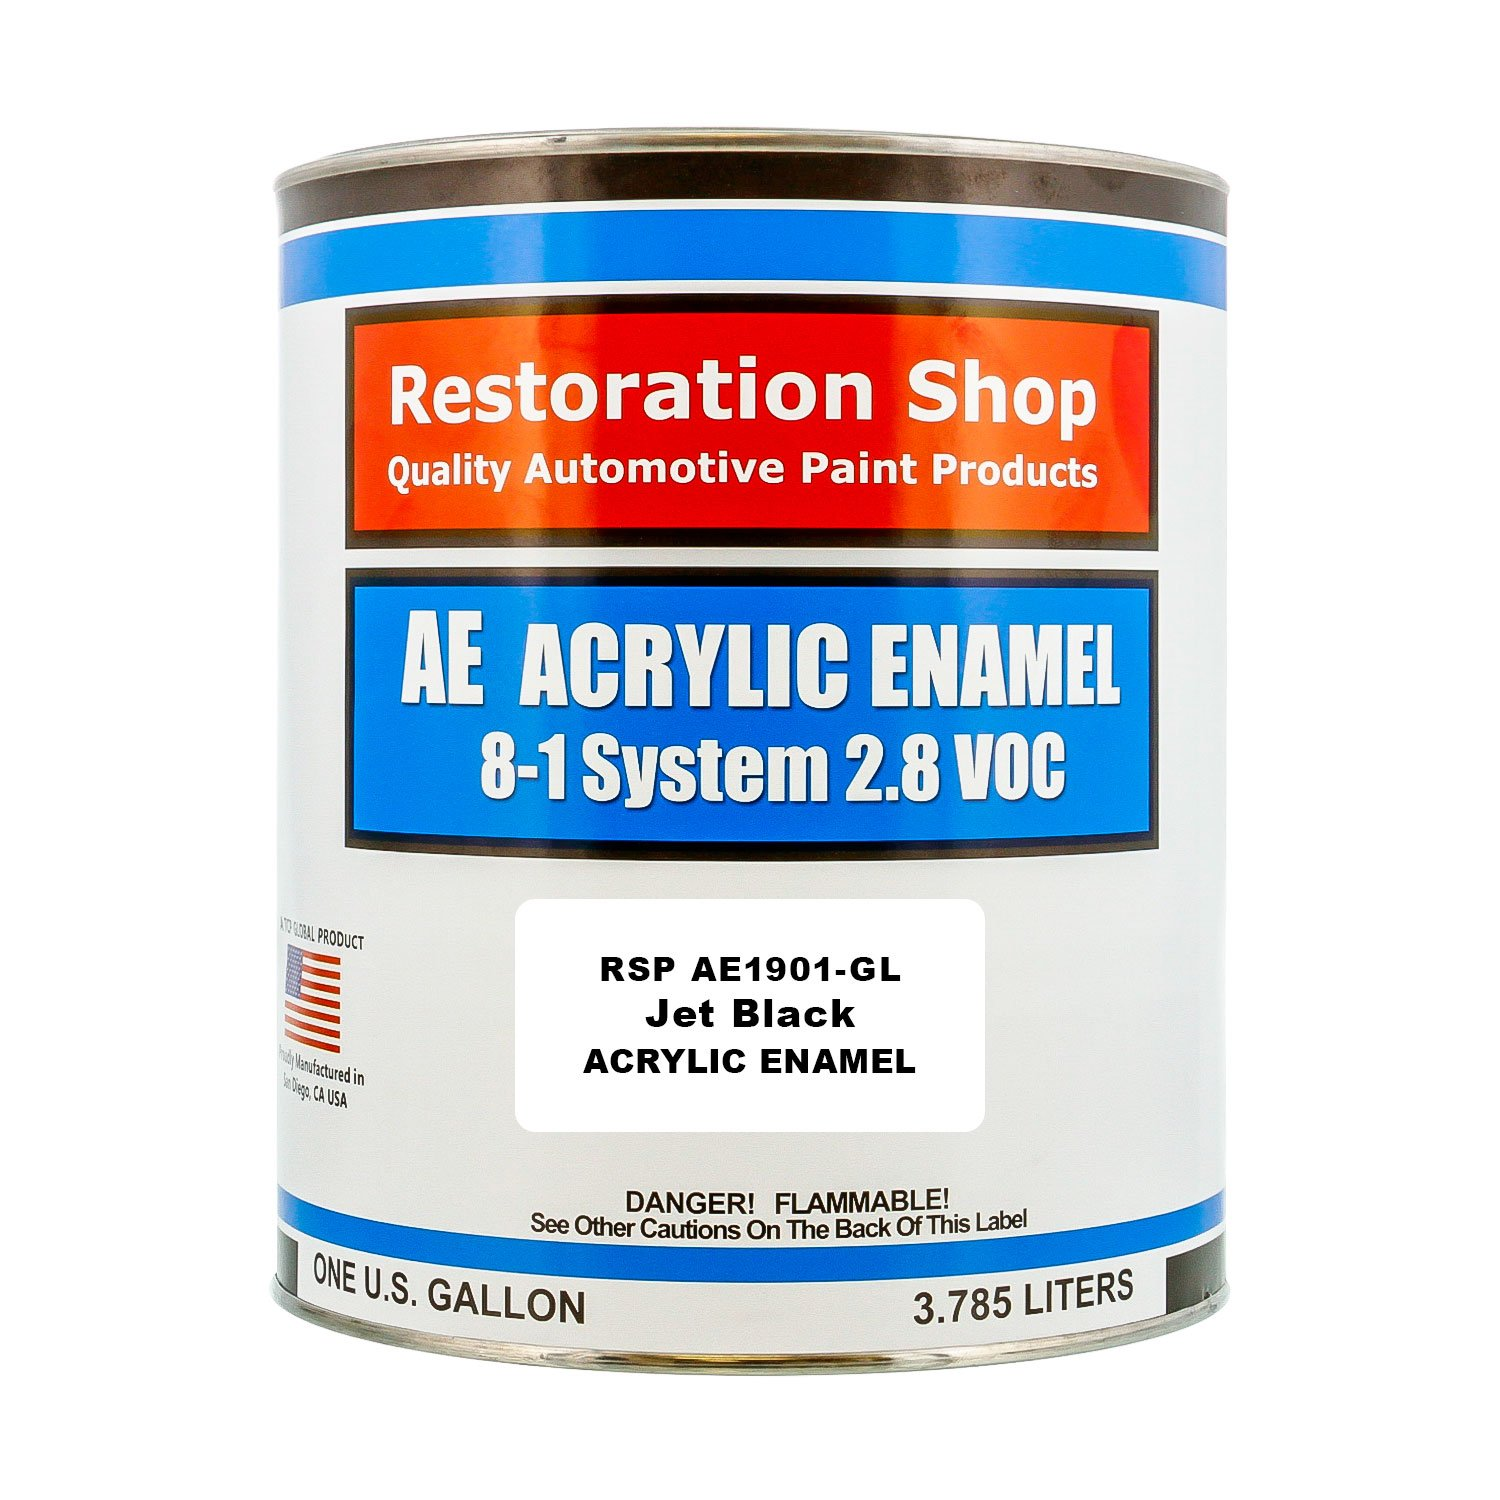 Restoration Shop - Gallon ONLY - Jet Black Enamel Acrylic Enamel Single Stage Car Auto Paint